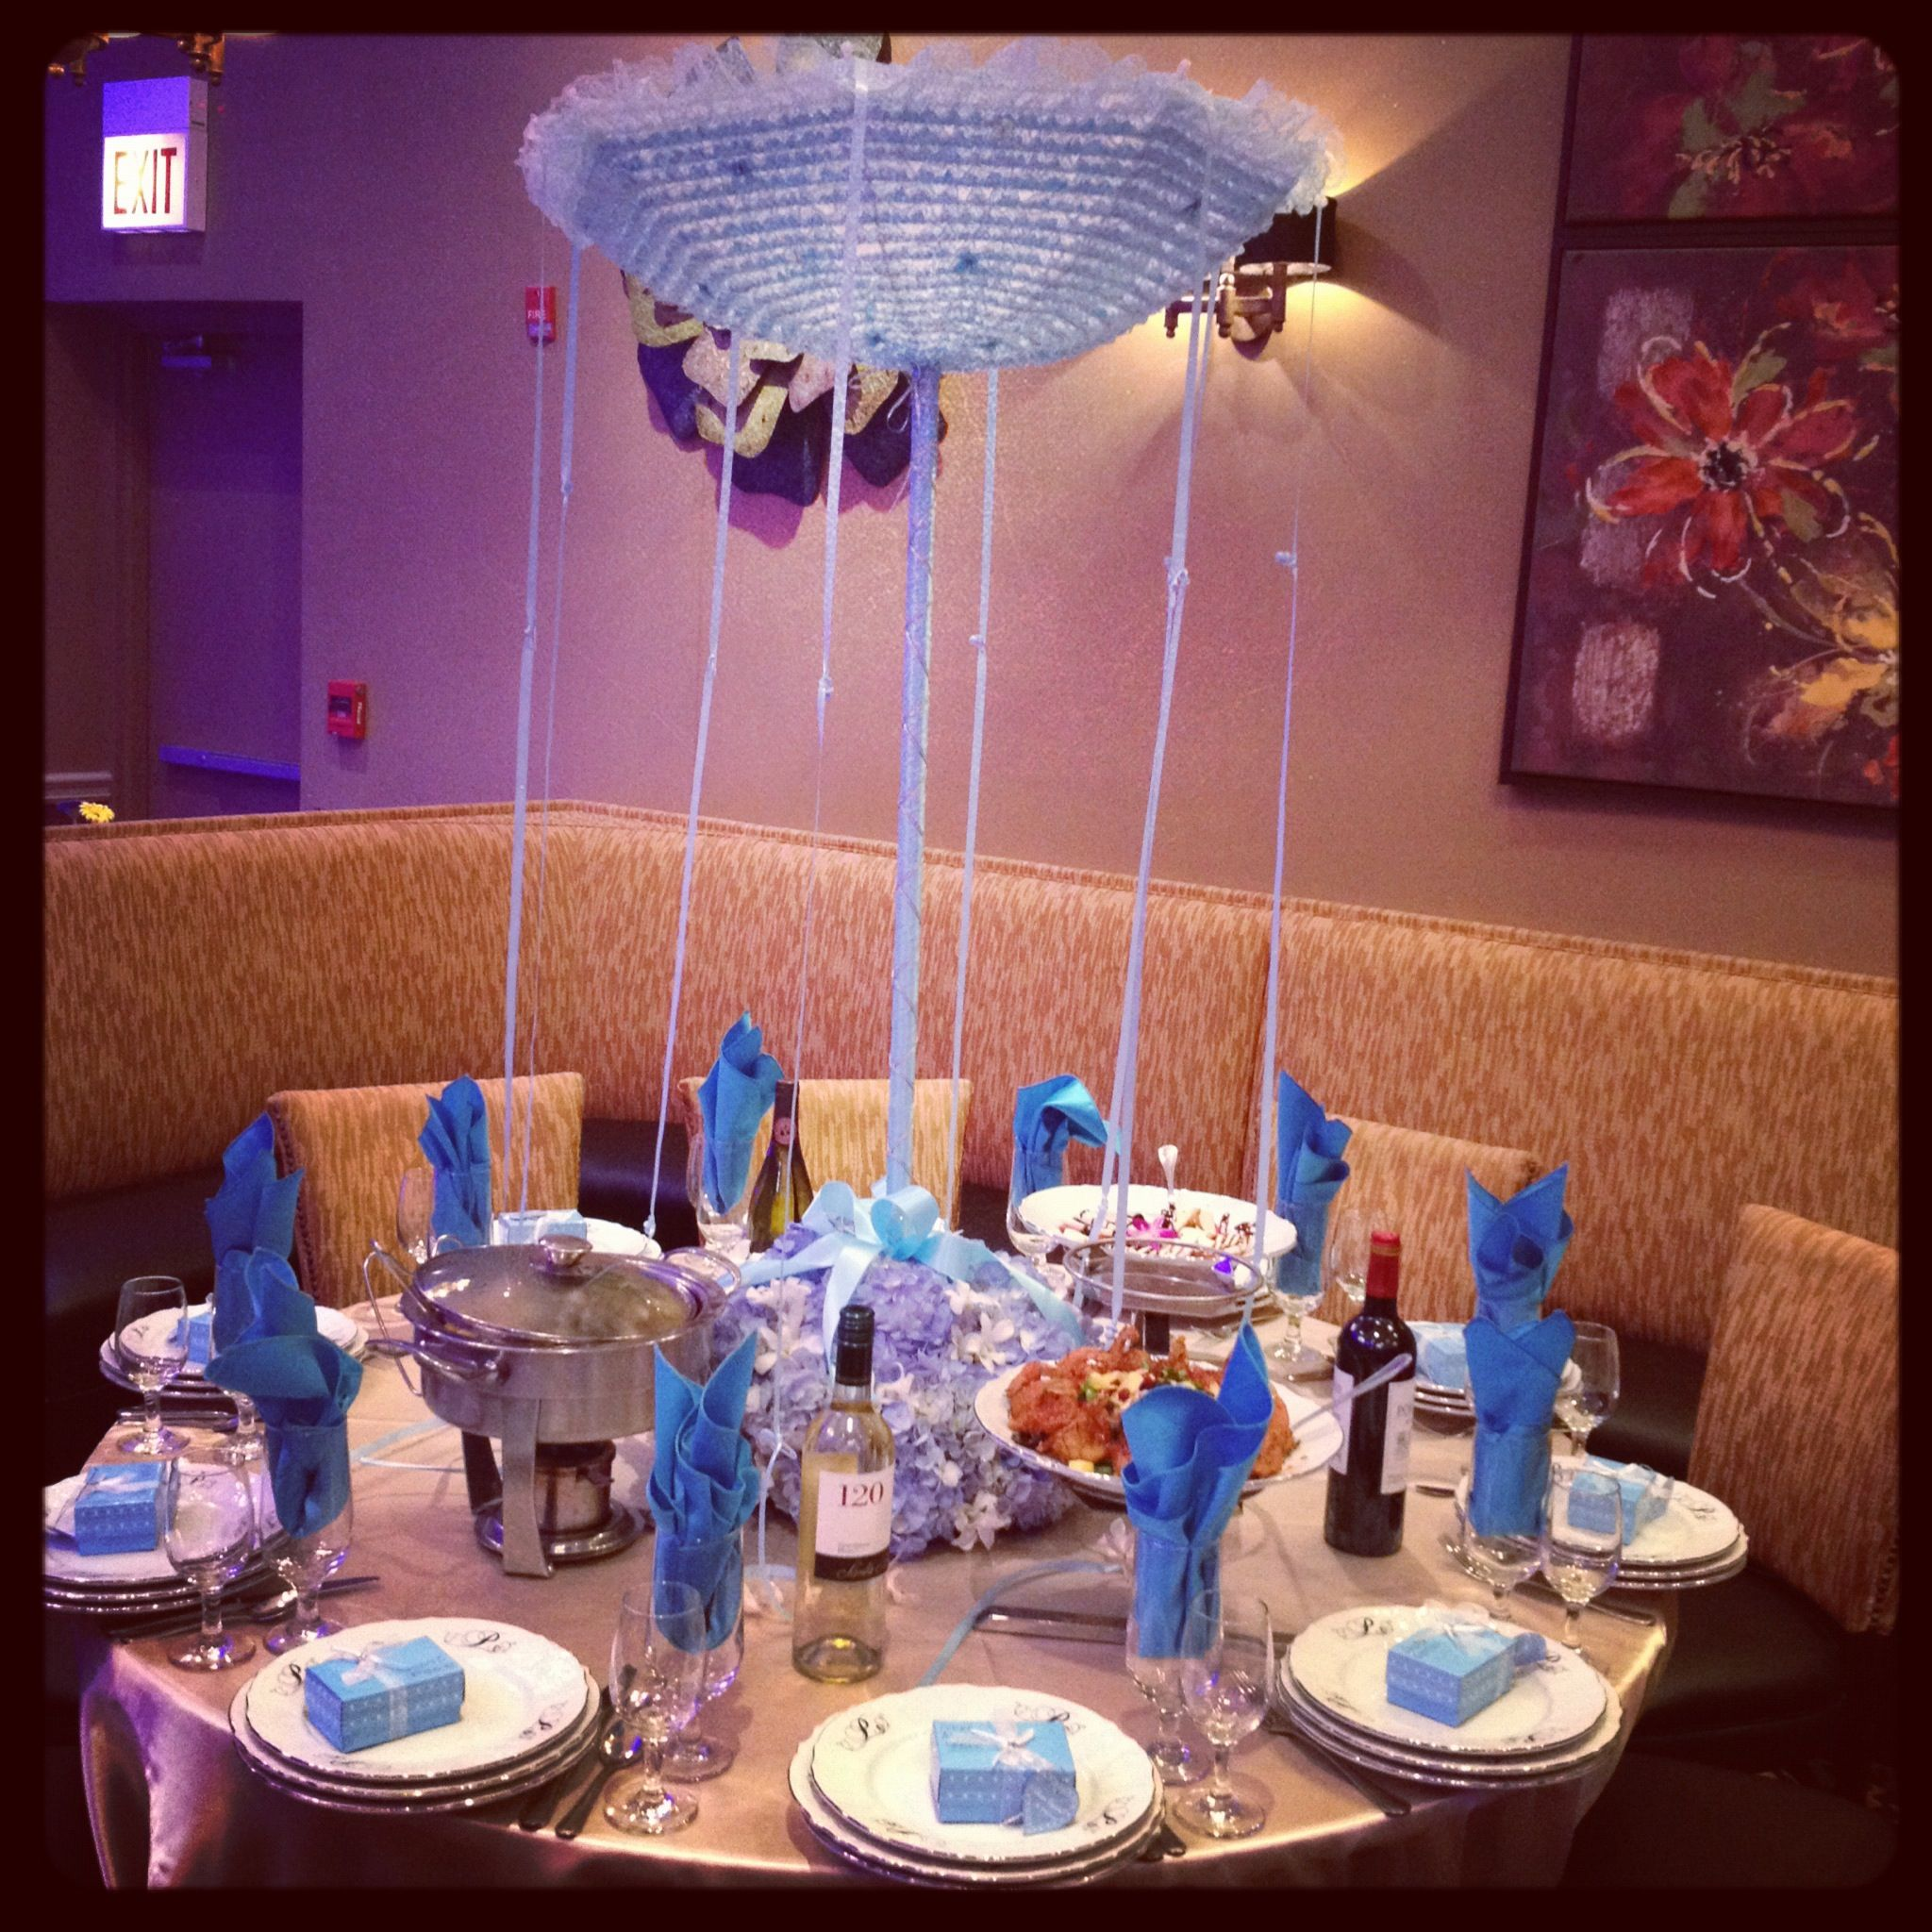 A Very Unique High Table Centerpiece Custom Made Upside